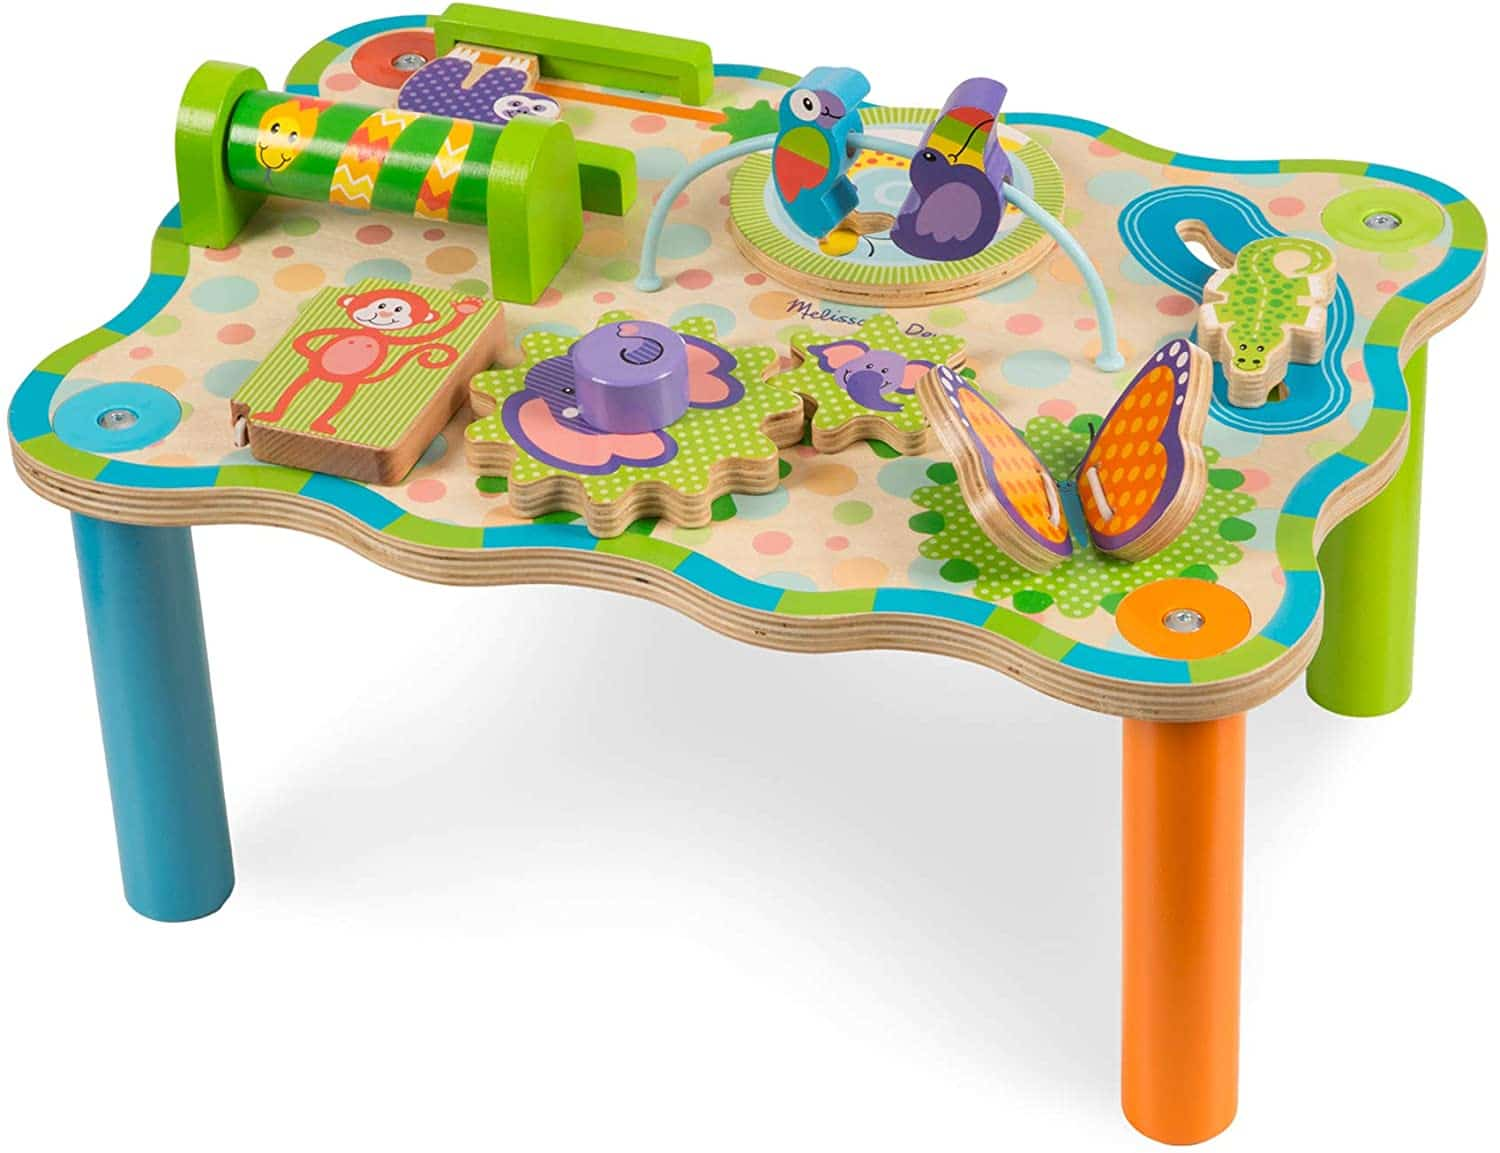 gifts-for-1-year-old-activity-table